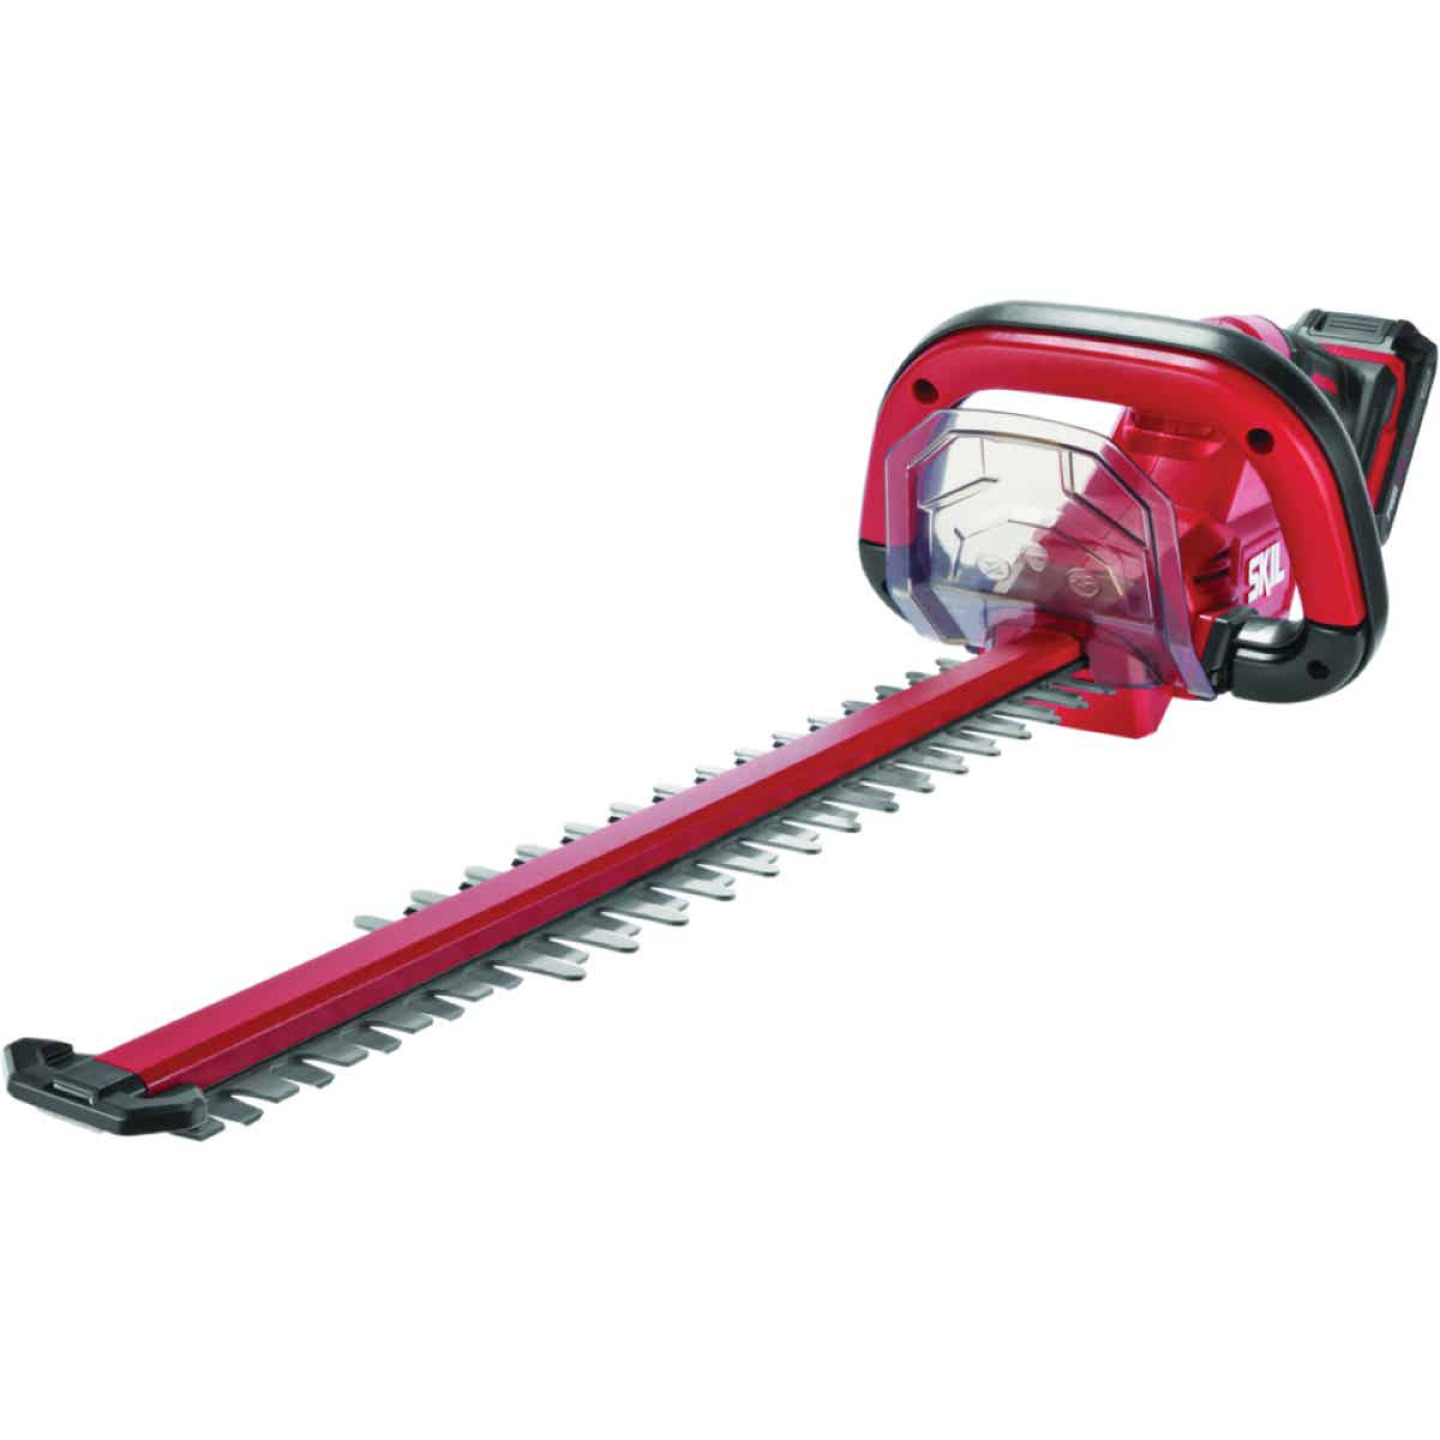 SKIL PwrCore 20V 22 In. Brushless Cordless Hedge Trimmer Image 6